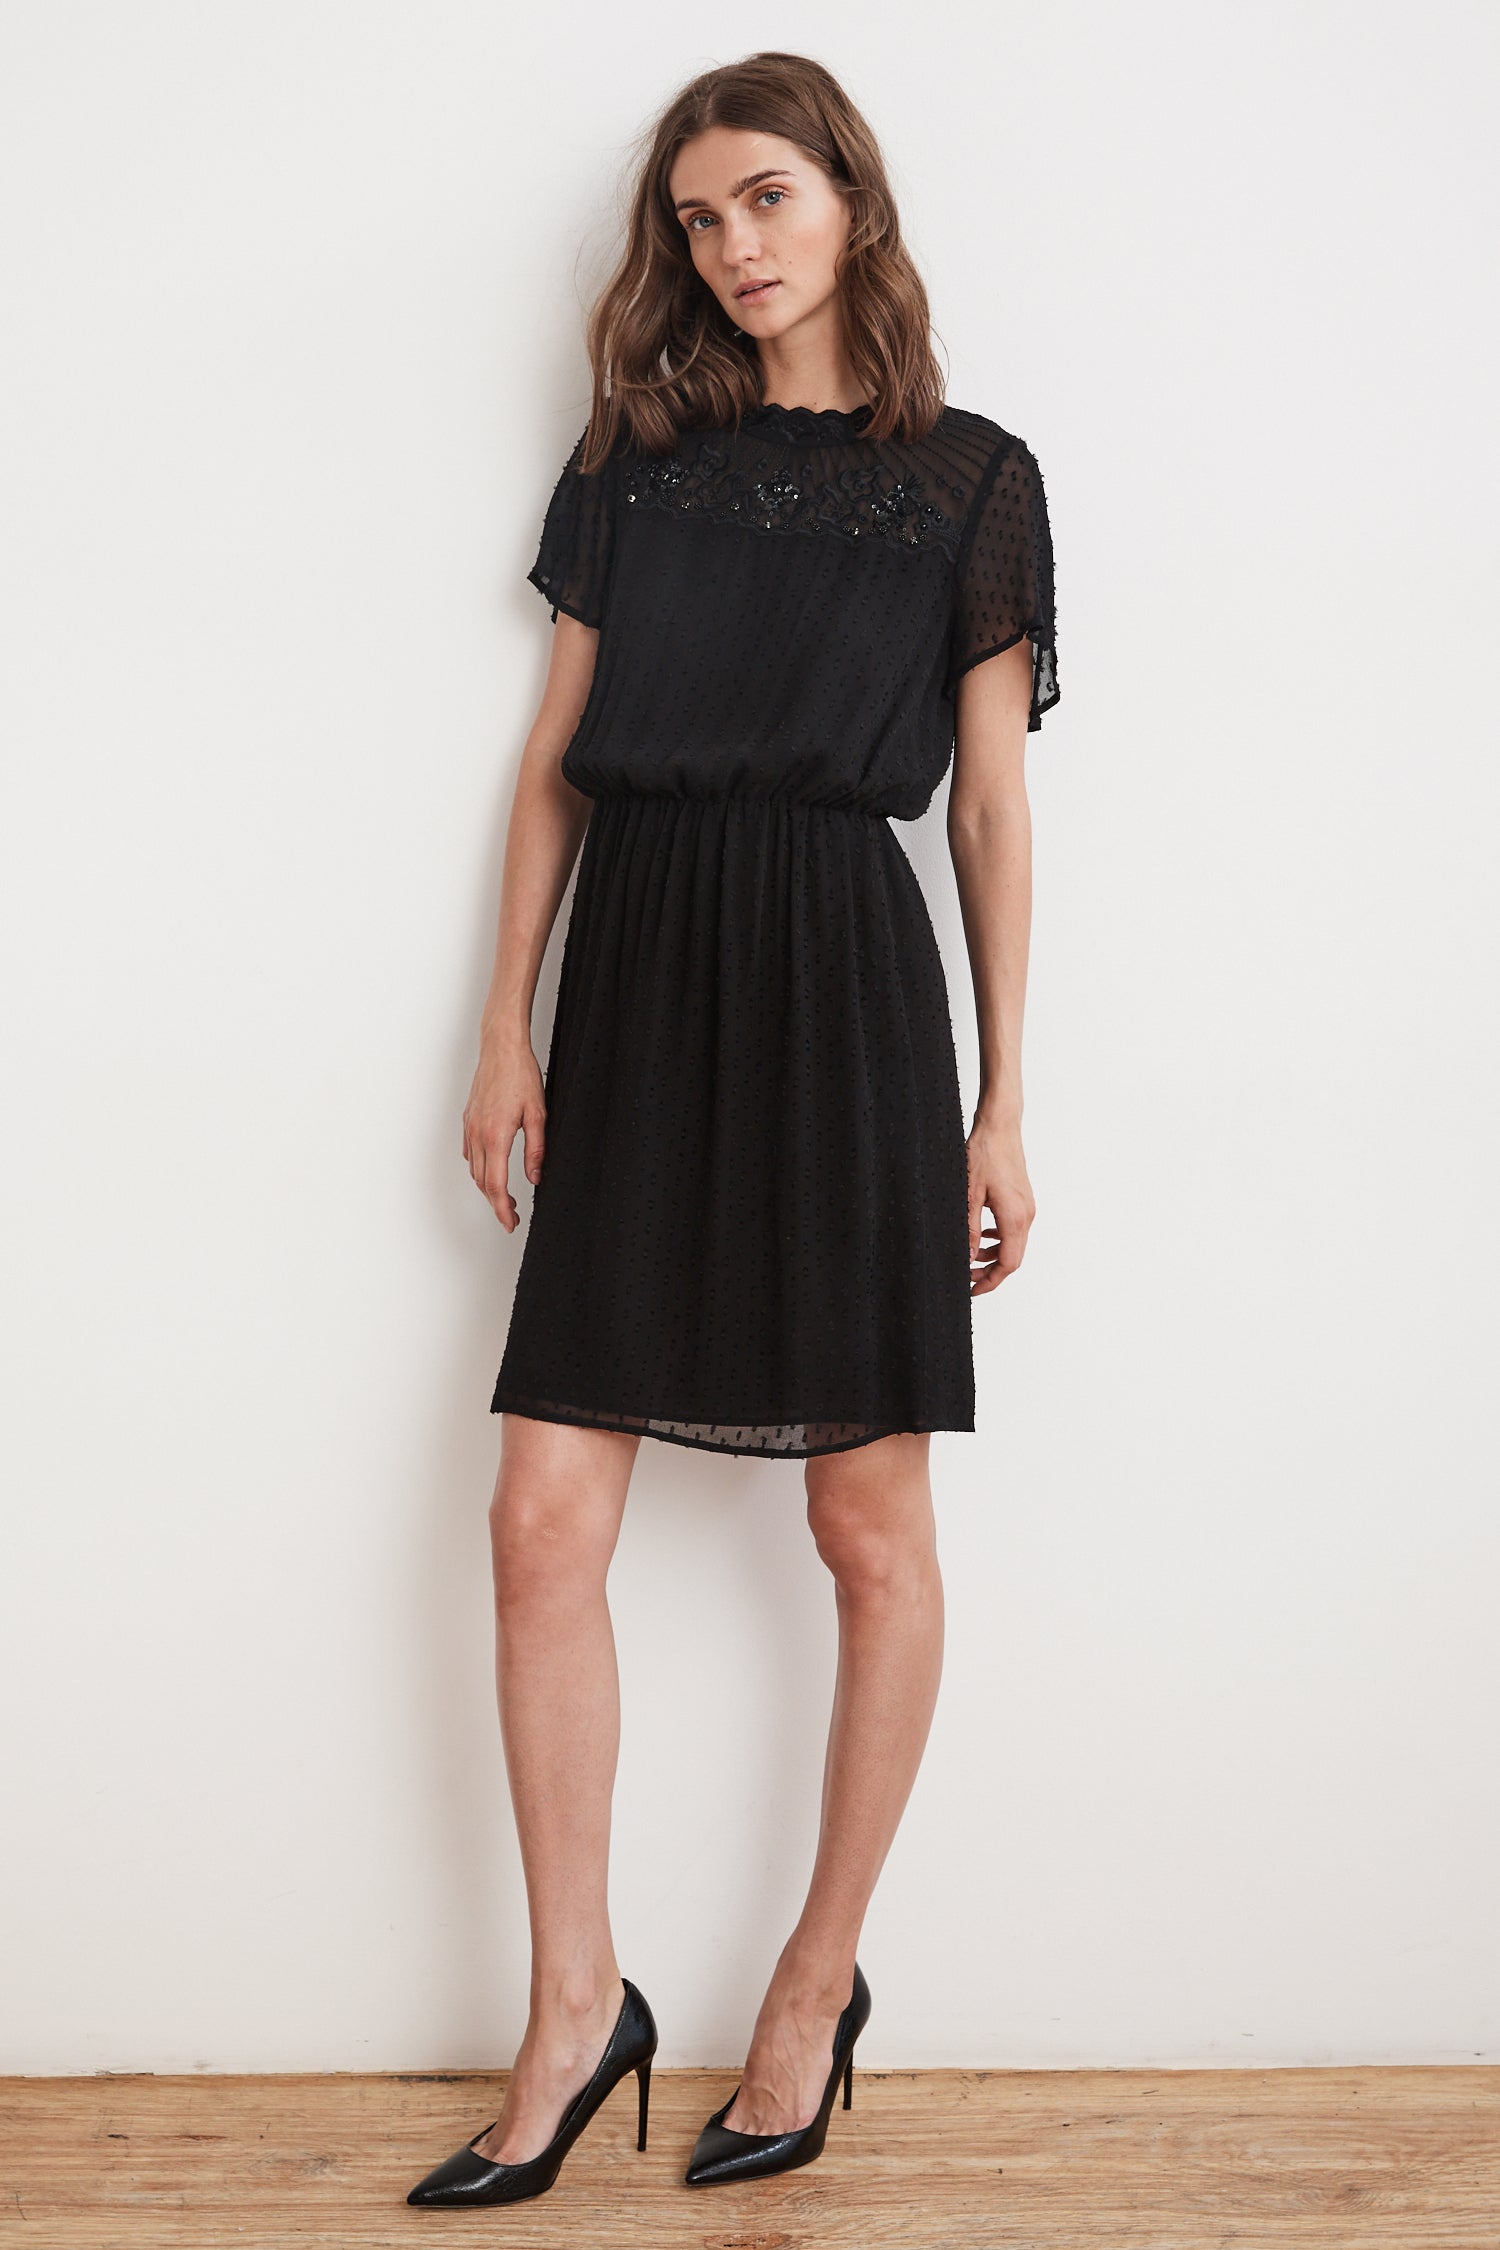 ABERDINE SWISS DOT EMBELLISHED DRESS IN BLACK